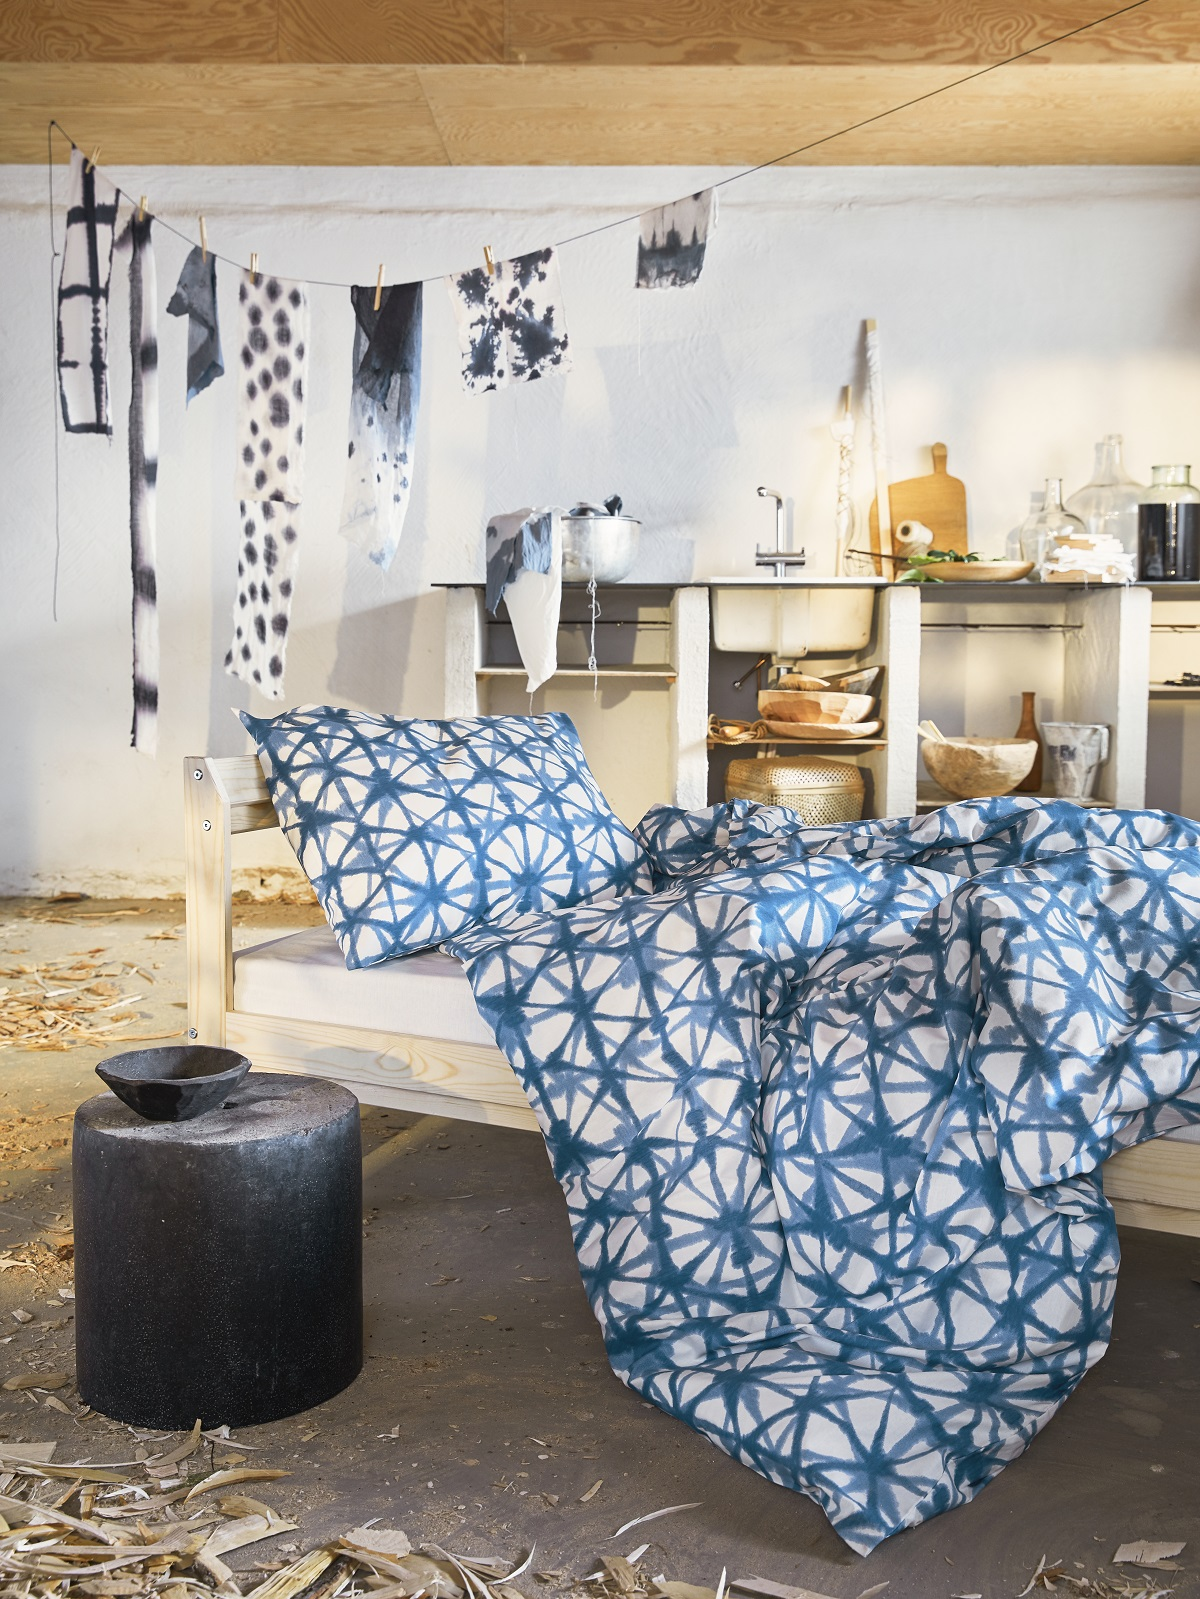 The Nordroom -IKEA's New Product Launch Embraces Sustainability and Slow Living